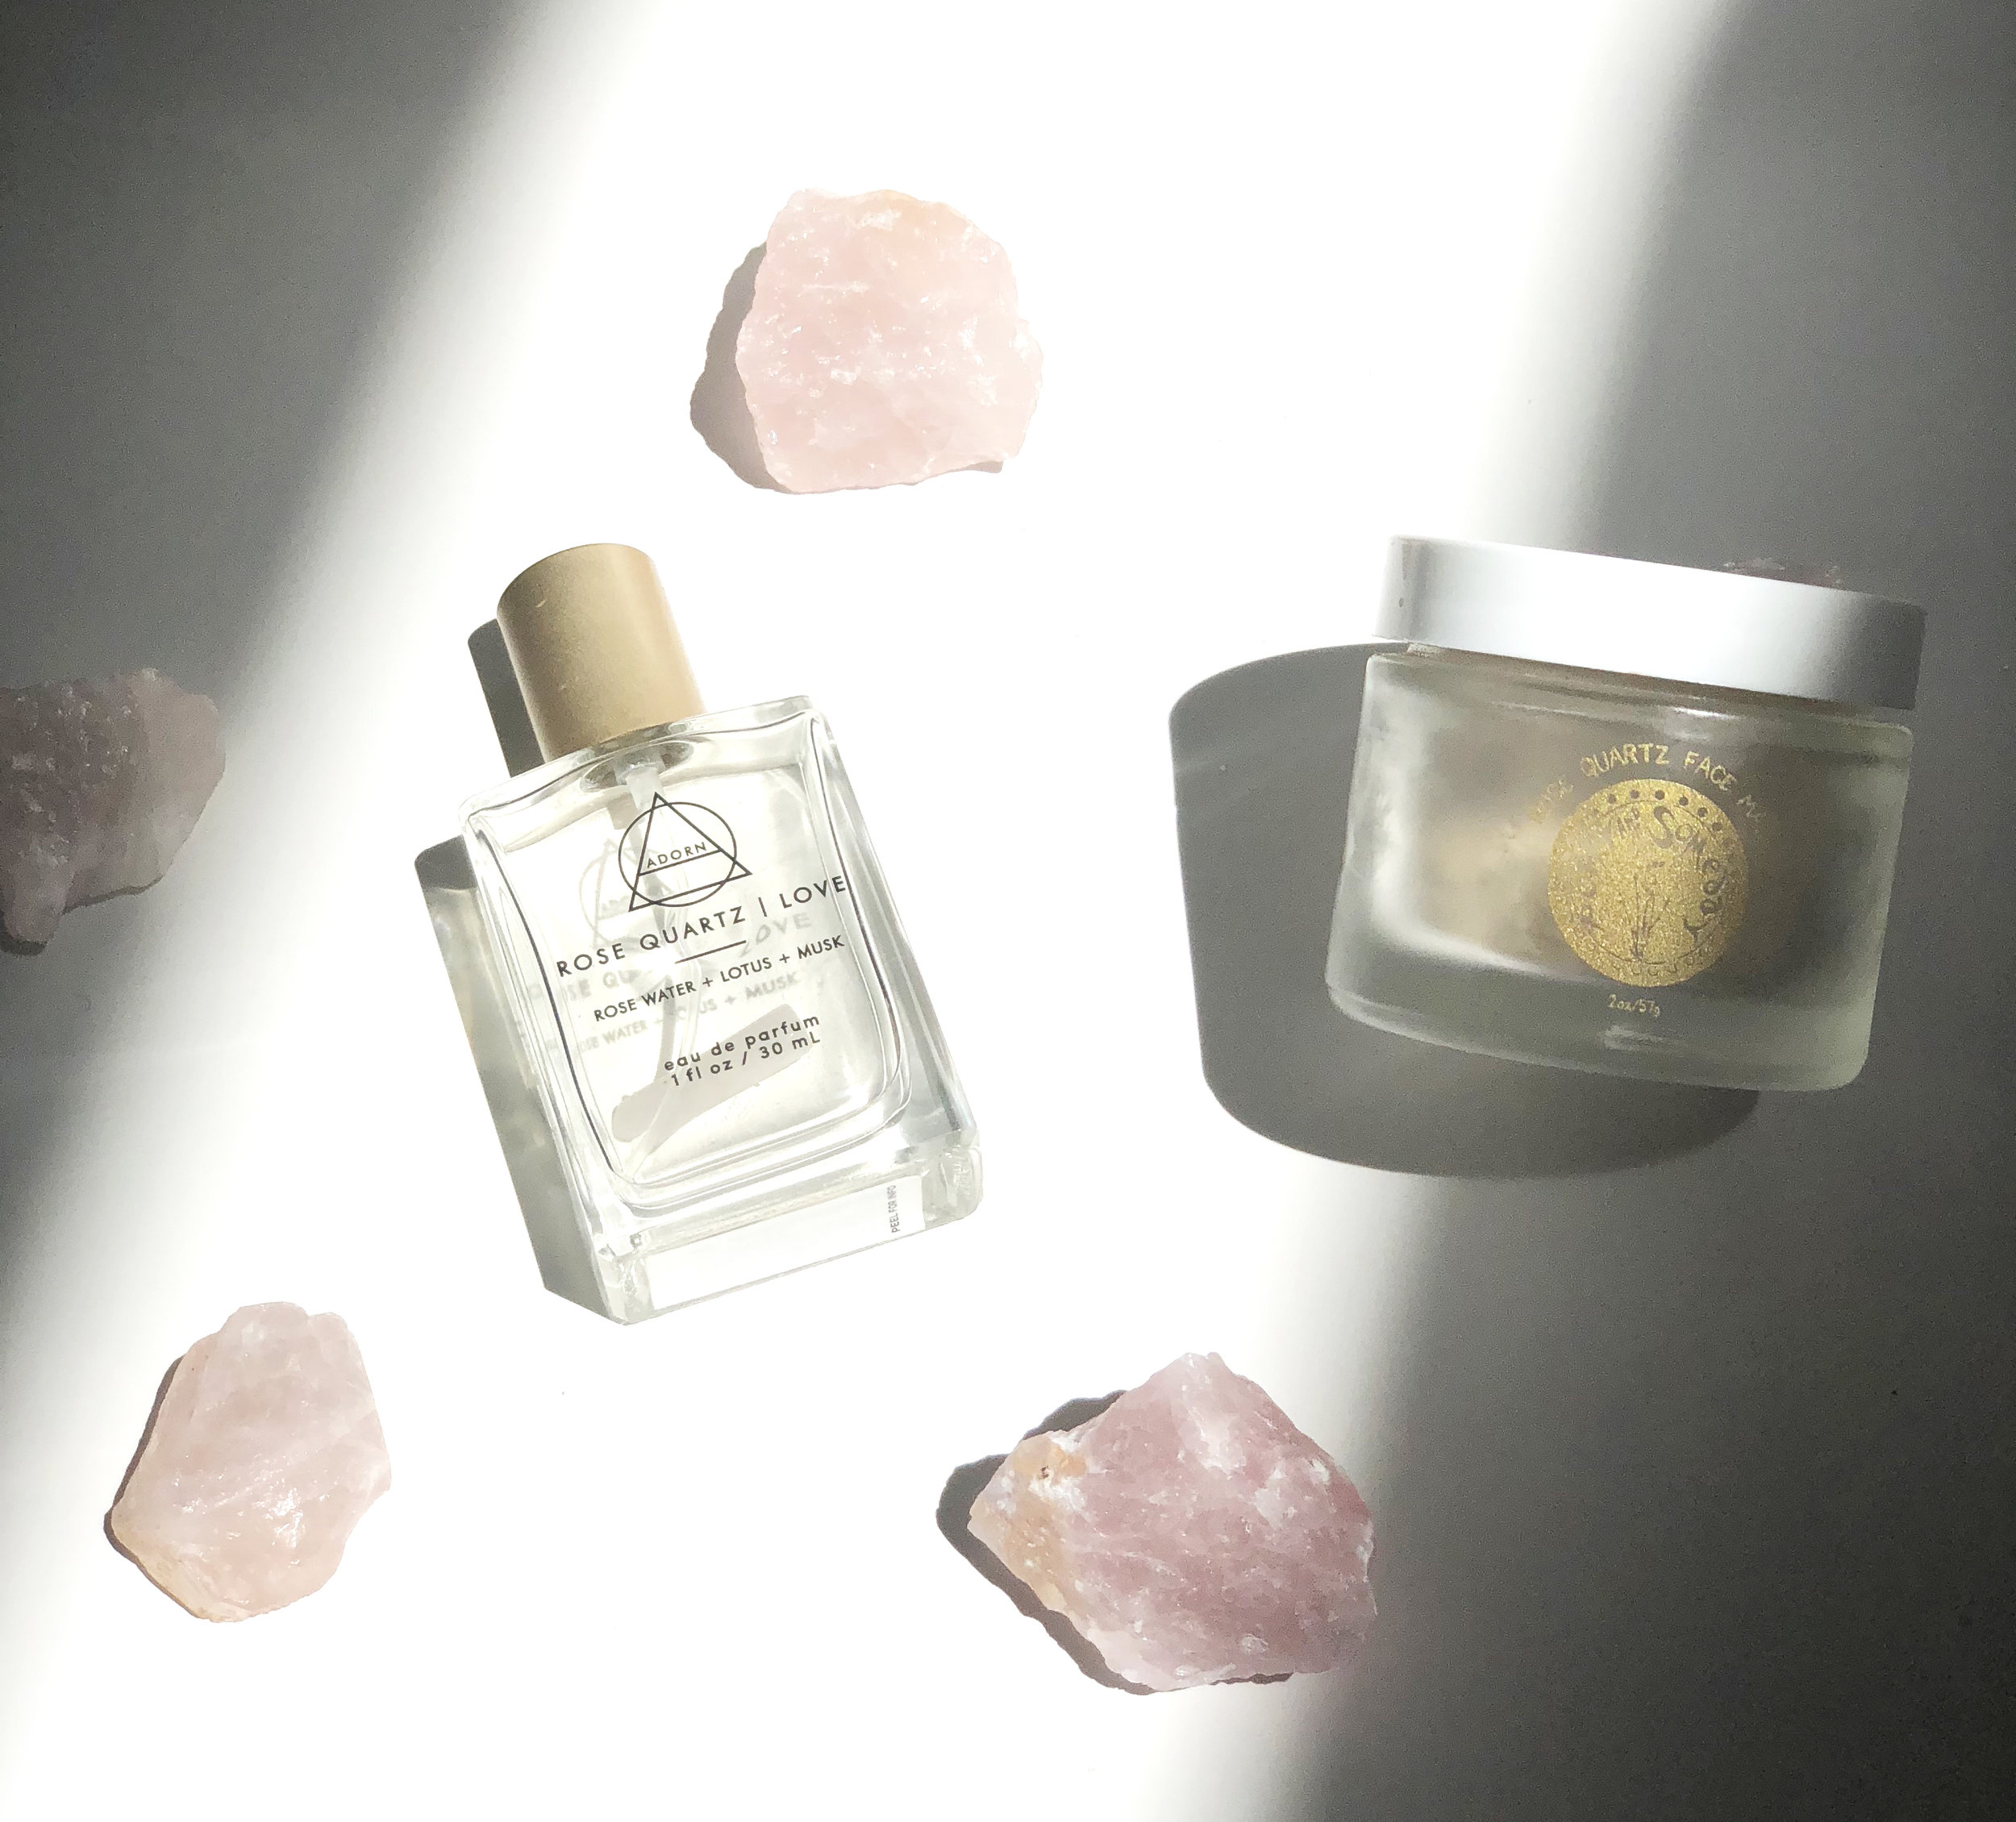 rose-quartz-infused-beauty-products.jpg